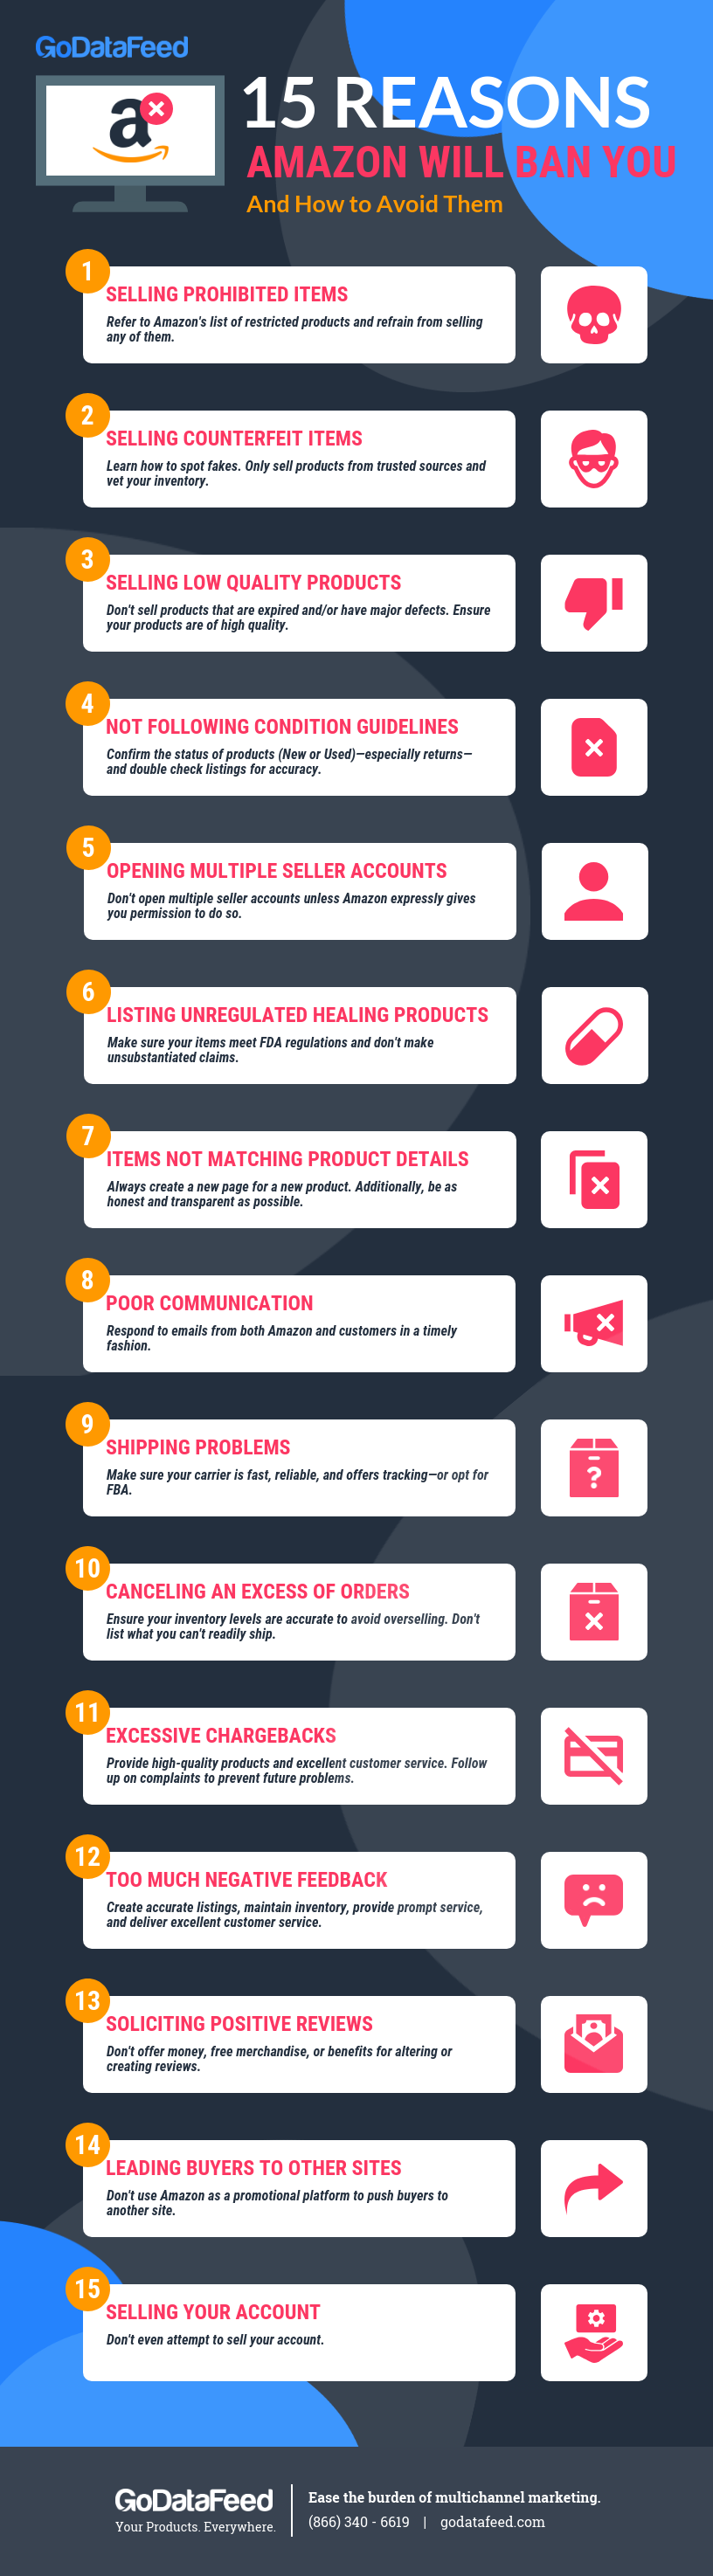 reasons amazon will ban you and how to avoid them ecommerce infographic